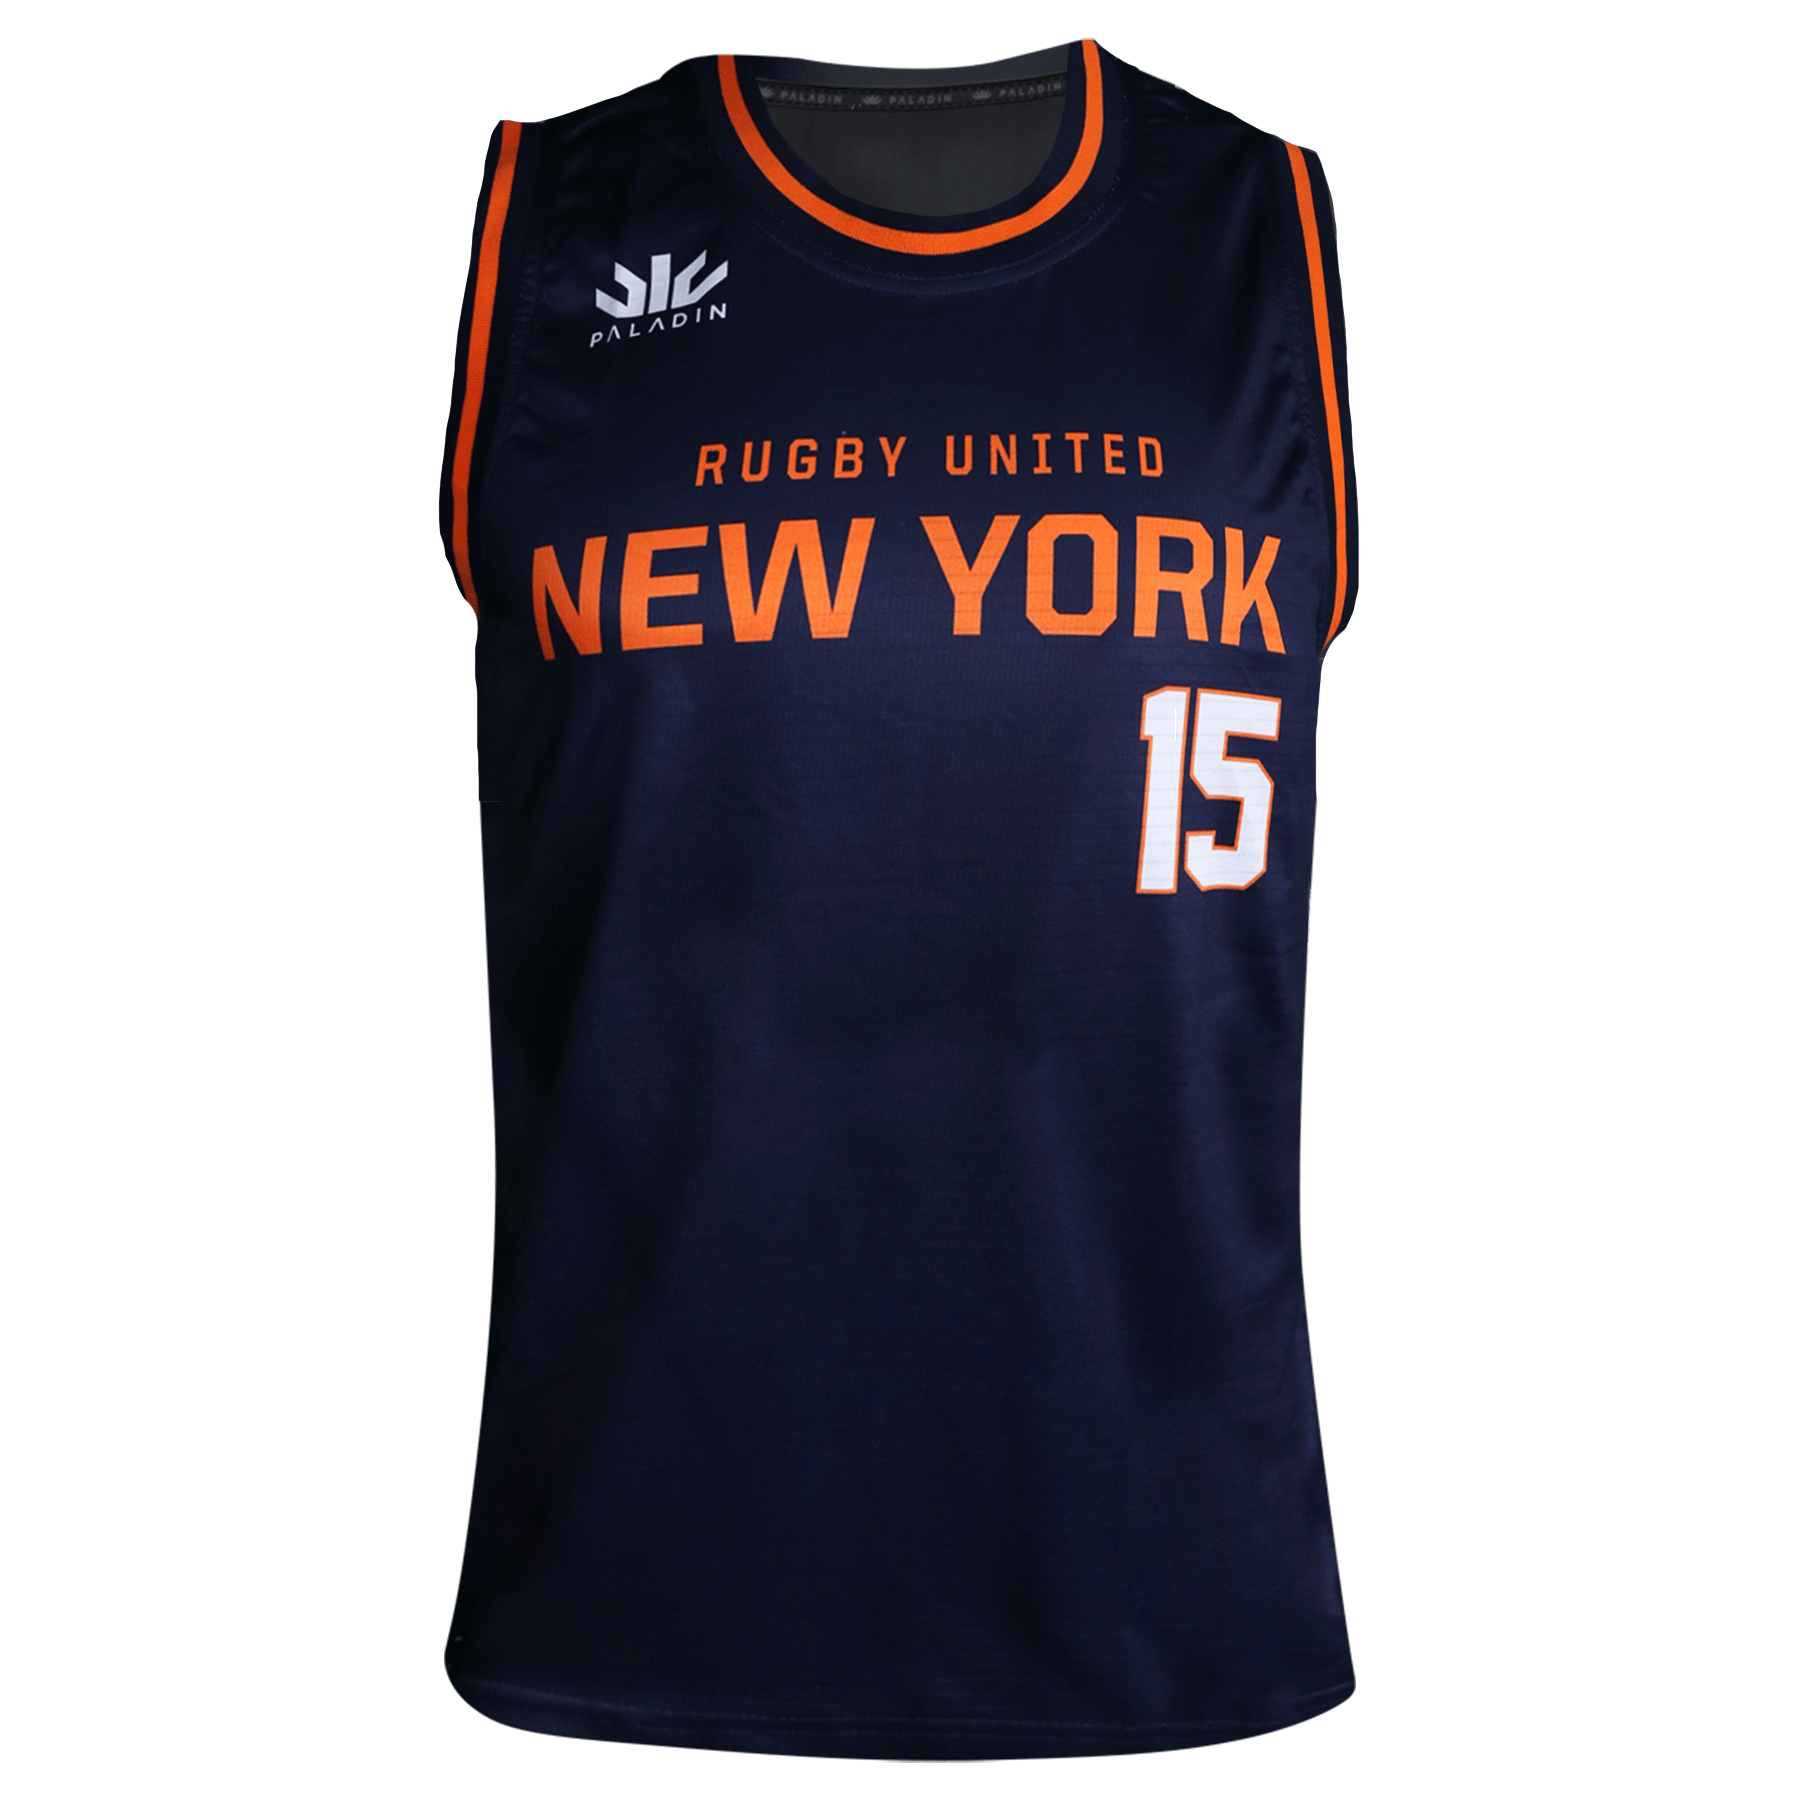 Paladin Rugby United NY Basketball Jersey Front